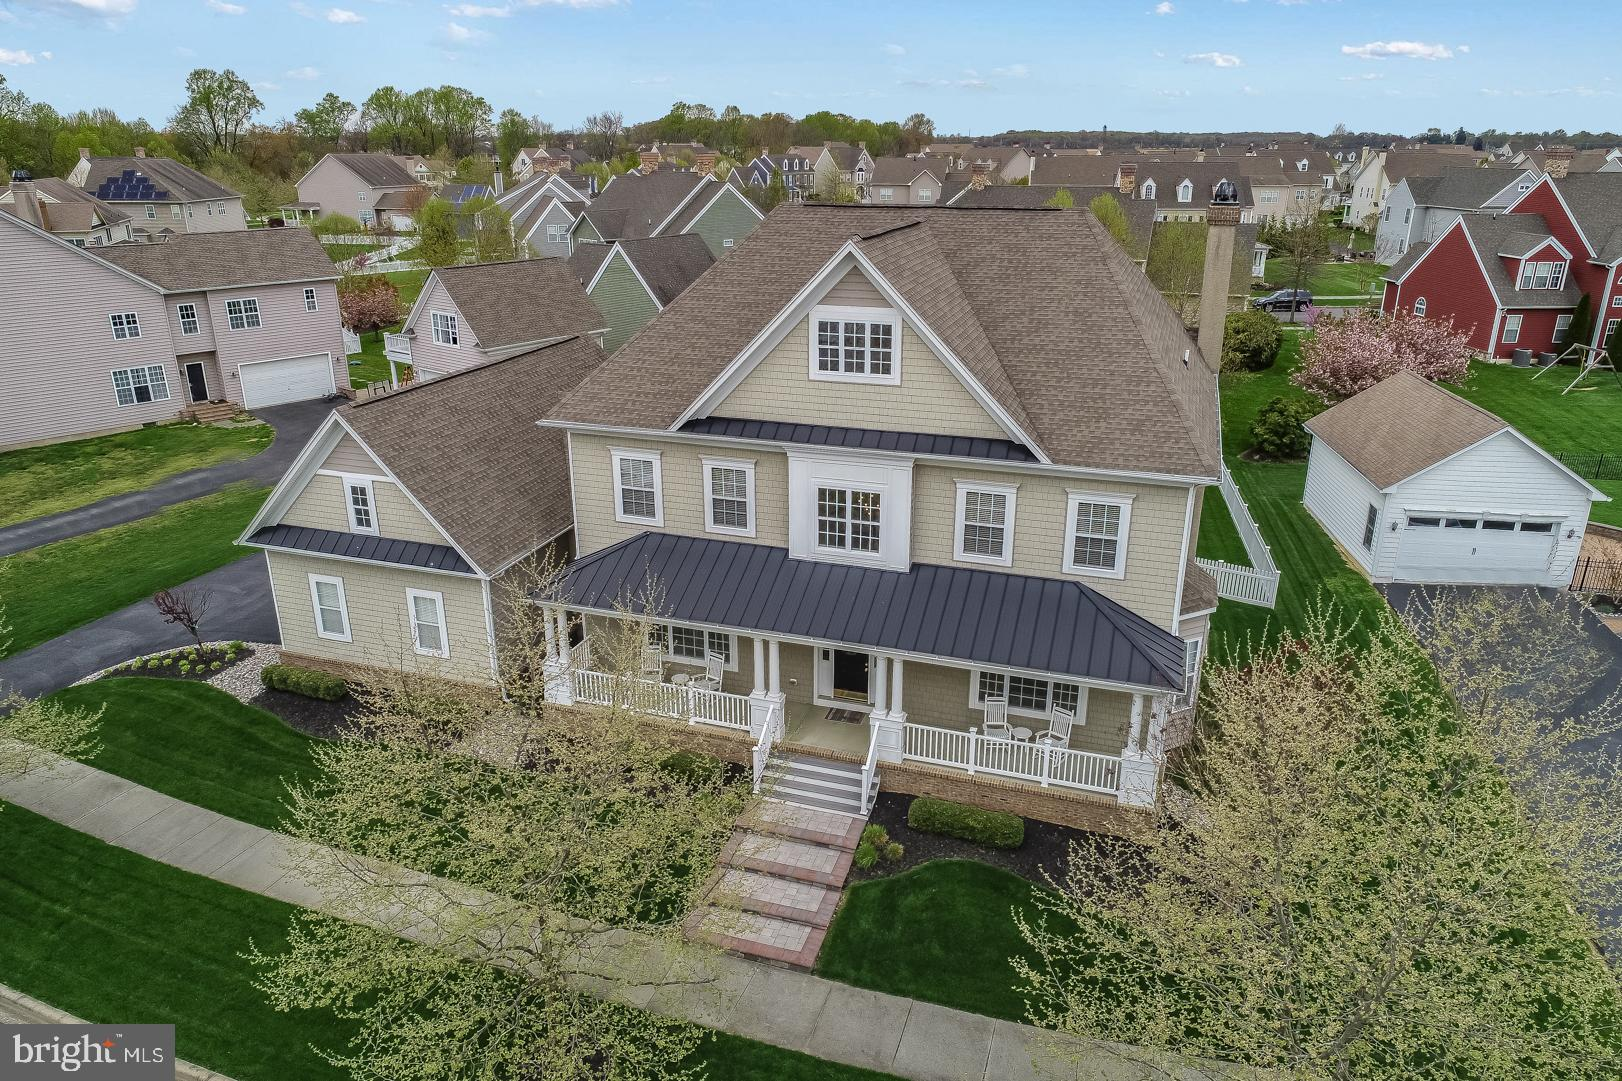 """Visit this home virtually: http://www.vht.com/434056745/IDXS - Welcome to PARKSIDE, one of the most sought after neighborhoods in Middletown. This stunning Anderson ~Fordham"""" model is just under 5000 sq ft.  As you drive to 443 Spring Hollow, you are taken in with a beautiful tree lined street and the curb appeal of this home. The manicured lawn and landscape and the newly finished paver front steps lead you to an oversized beautiful front porch that welcomes you.  Upon entry, as you open the front door, you are greeted with a 2-story foyer and hardwood floors that extend throughout the entire first floor with the exception of one room.  This Center Hall Colonial offers you a grand formal living and dining room with beautiful crown molding and updated colors. As you enter towards the back of this home you are taken in by the spacious family room with a coffered ceiling and a glass tiled fireplace. There is a great office through double glass french doors with tons of natural light. The heart of the home is an oversized entertaining kitchen. The newly renovated kitchen offers 42~ white maple cabinets, a brand-new island that seats six, granite countertops, built-in stainless double ovens, gas cook top and stainless steel appliances (new cook top and microwave 2019). Off the kitchen is a butler~s pantry, a spacious mud room and another first floor half bathroom. The second floor possesses four large bedrooms, one of which is a ~princess suite~, and 3 full bathrooms. You walk up 2 steps into the Master retreat. This large bedroom and bathroom are captivating and include California closets, a three-piece bathroom with a large oversized luxury tub and walk-in shower.  Every upstairs bedroom possesses its own spacious walk-in closet!  The upstairs HVAC was completely replaced in 2019. Lets not forget about the FINISHED BASEMENT!!! As you walk down the recently finished basement you are greeted with the warmth of a rugged barn door that separates you from a custom luxuriou"""